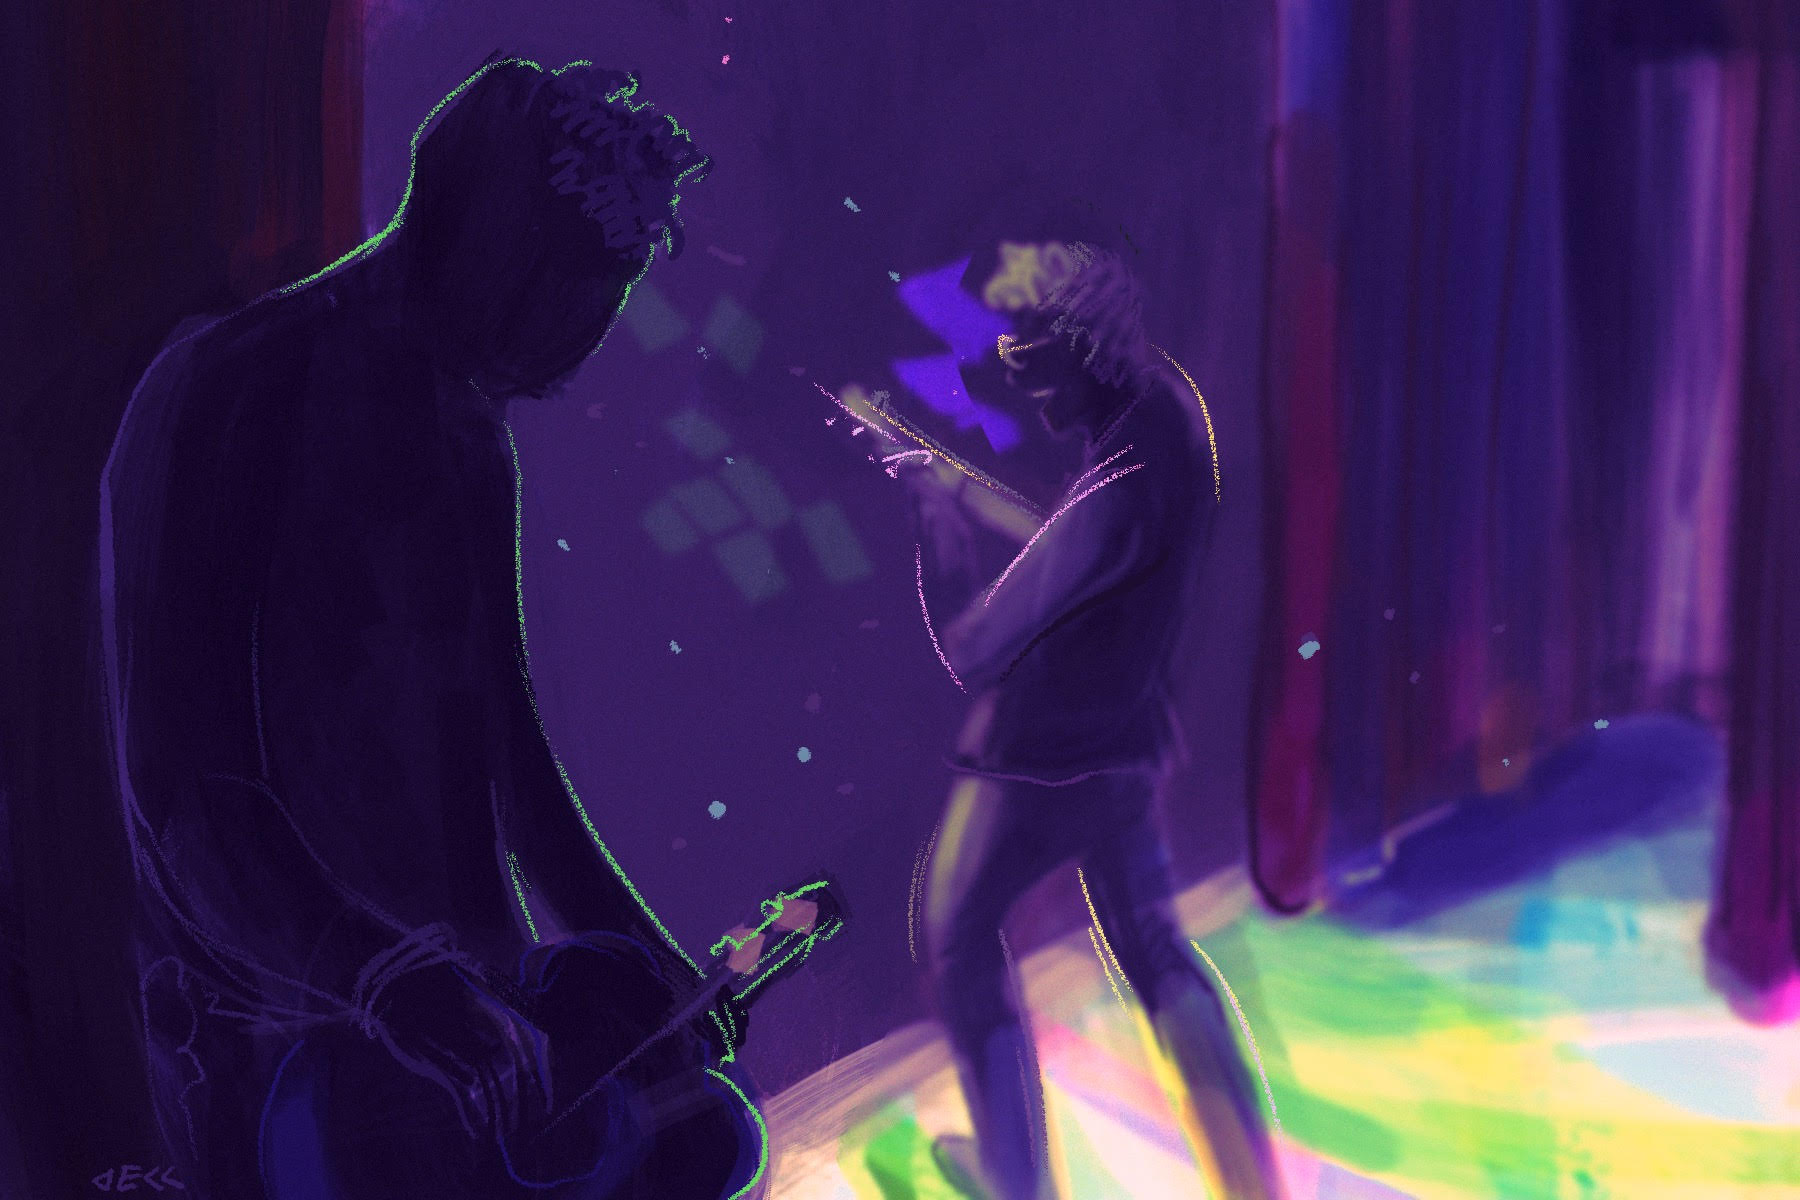 Illustration of a band on stage.